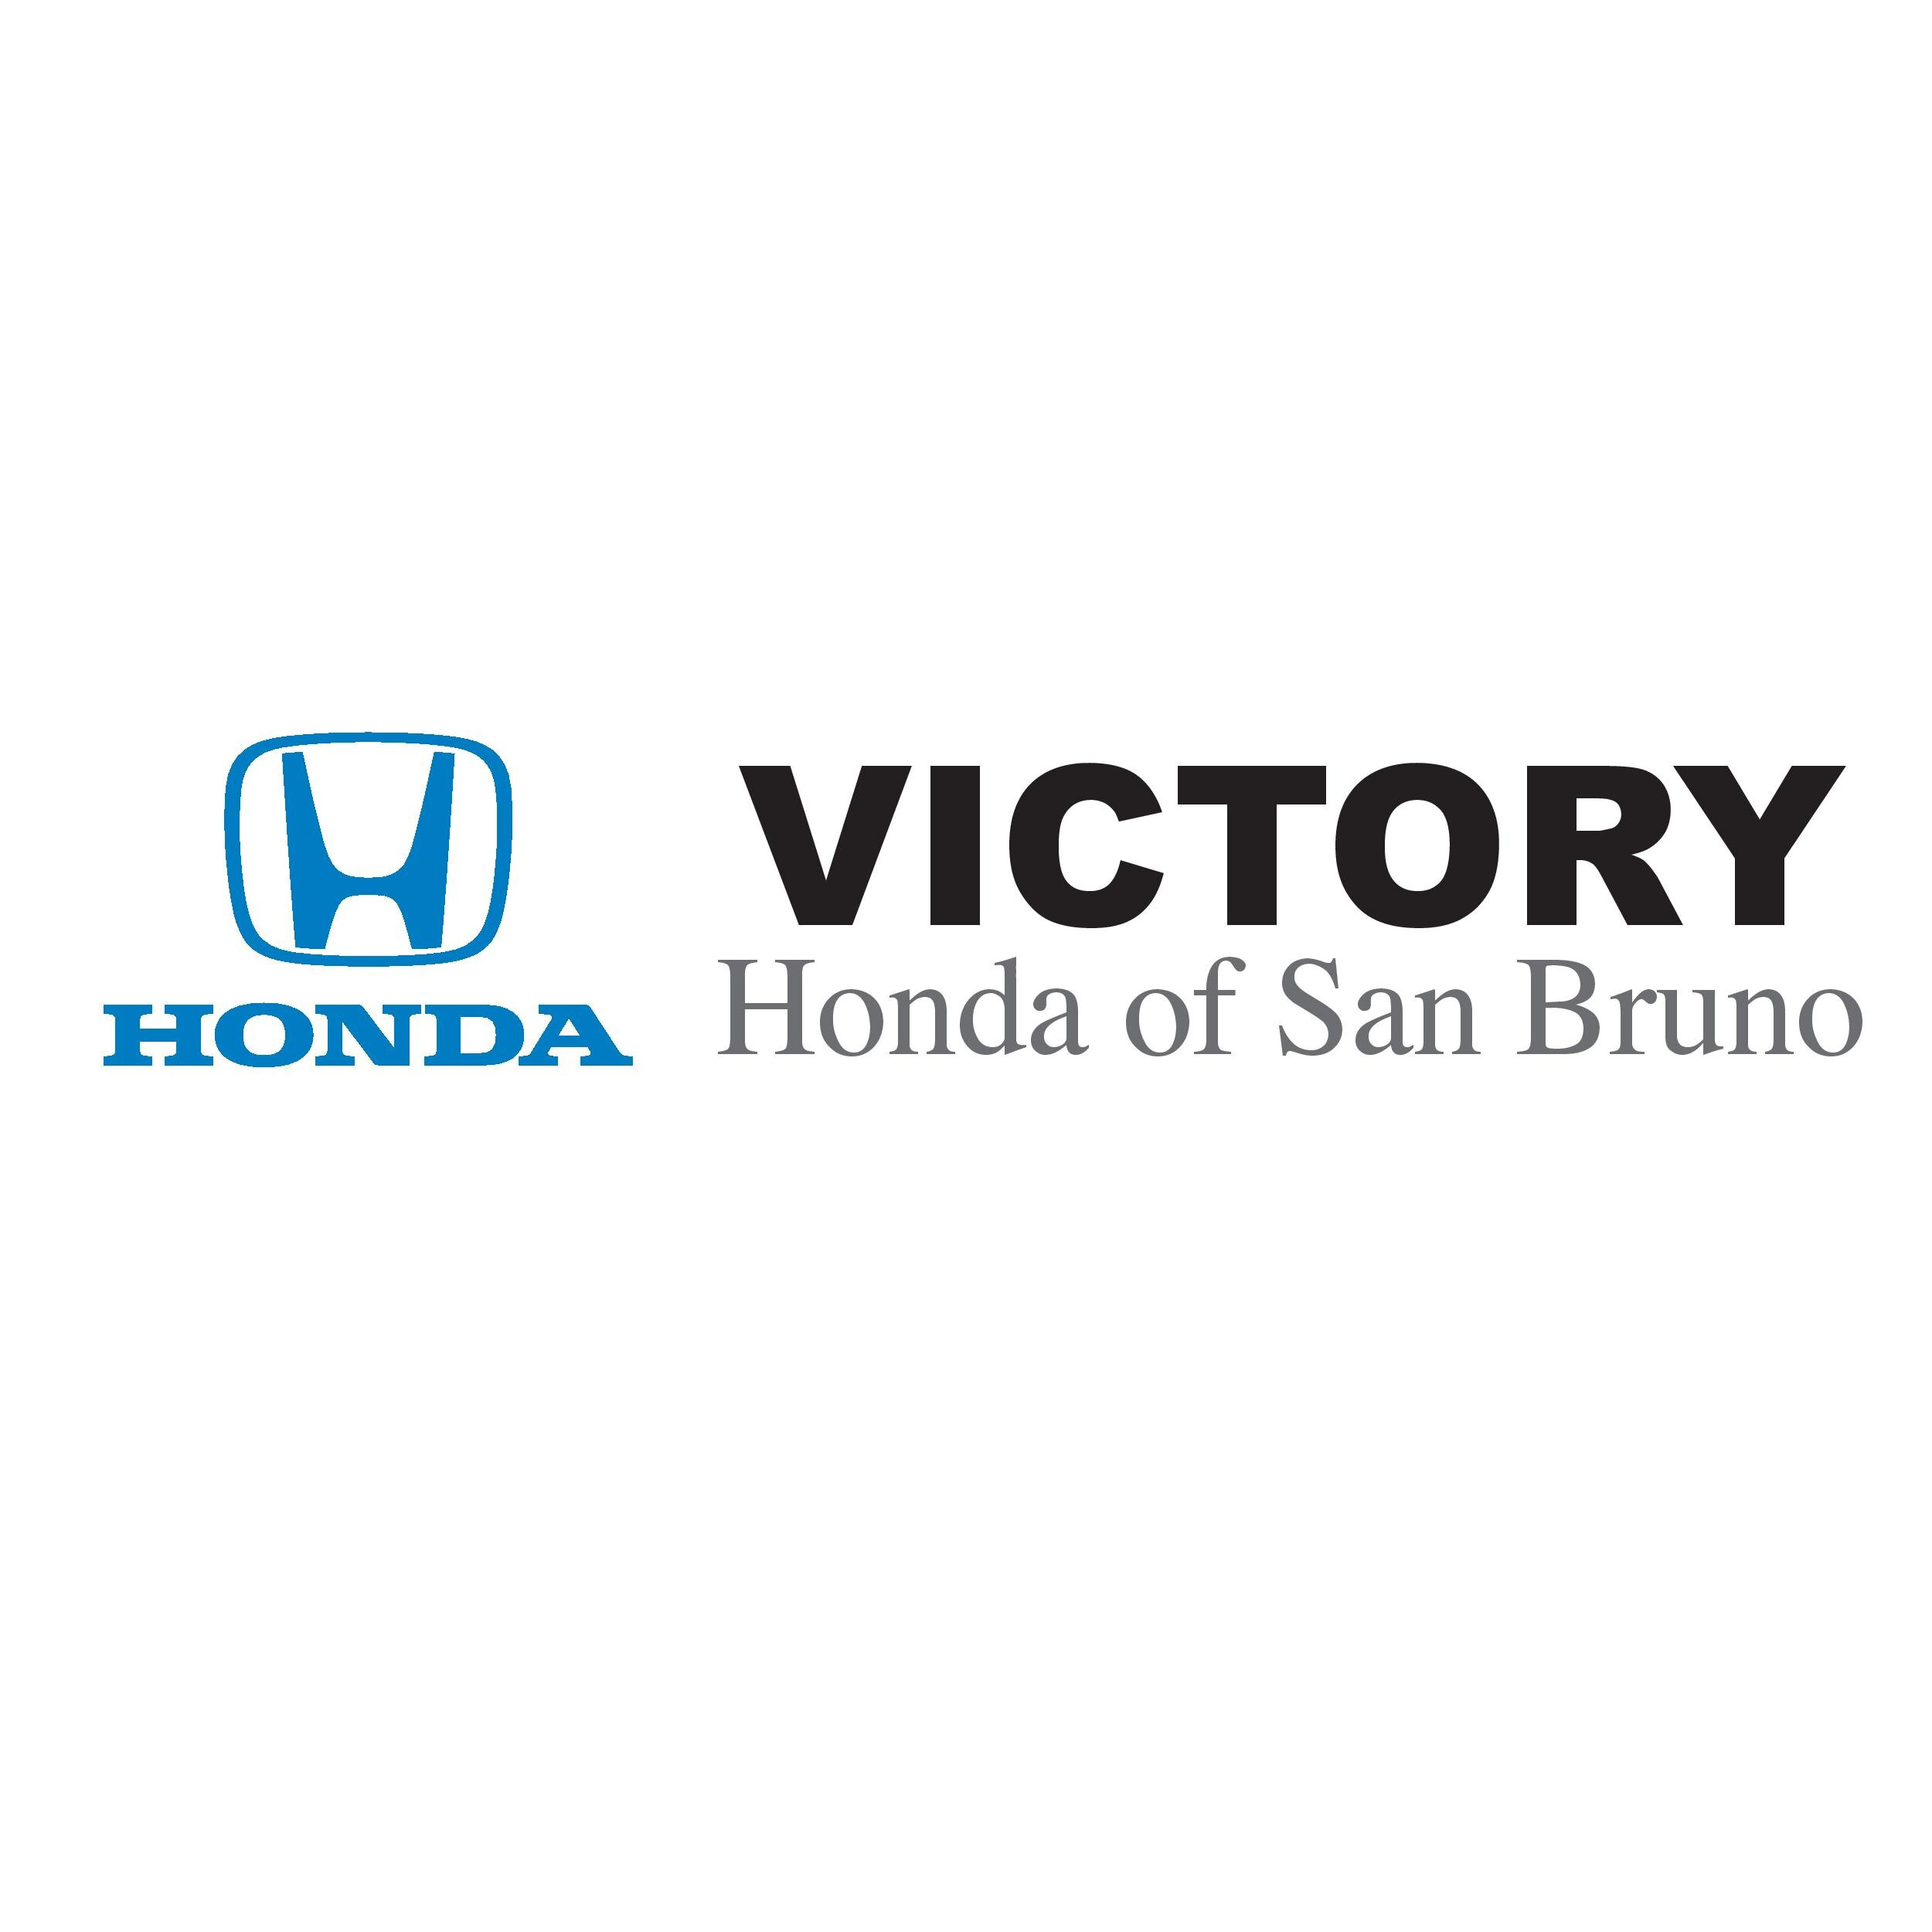 Victory Honda Of San Bruno On Twitter Stop In Before The